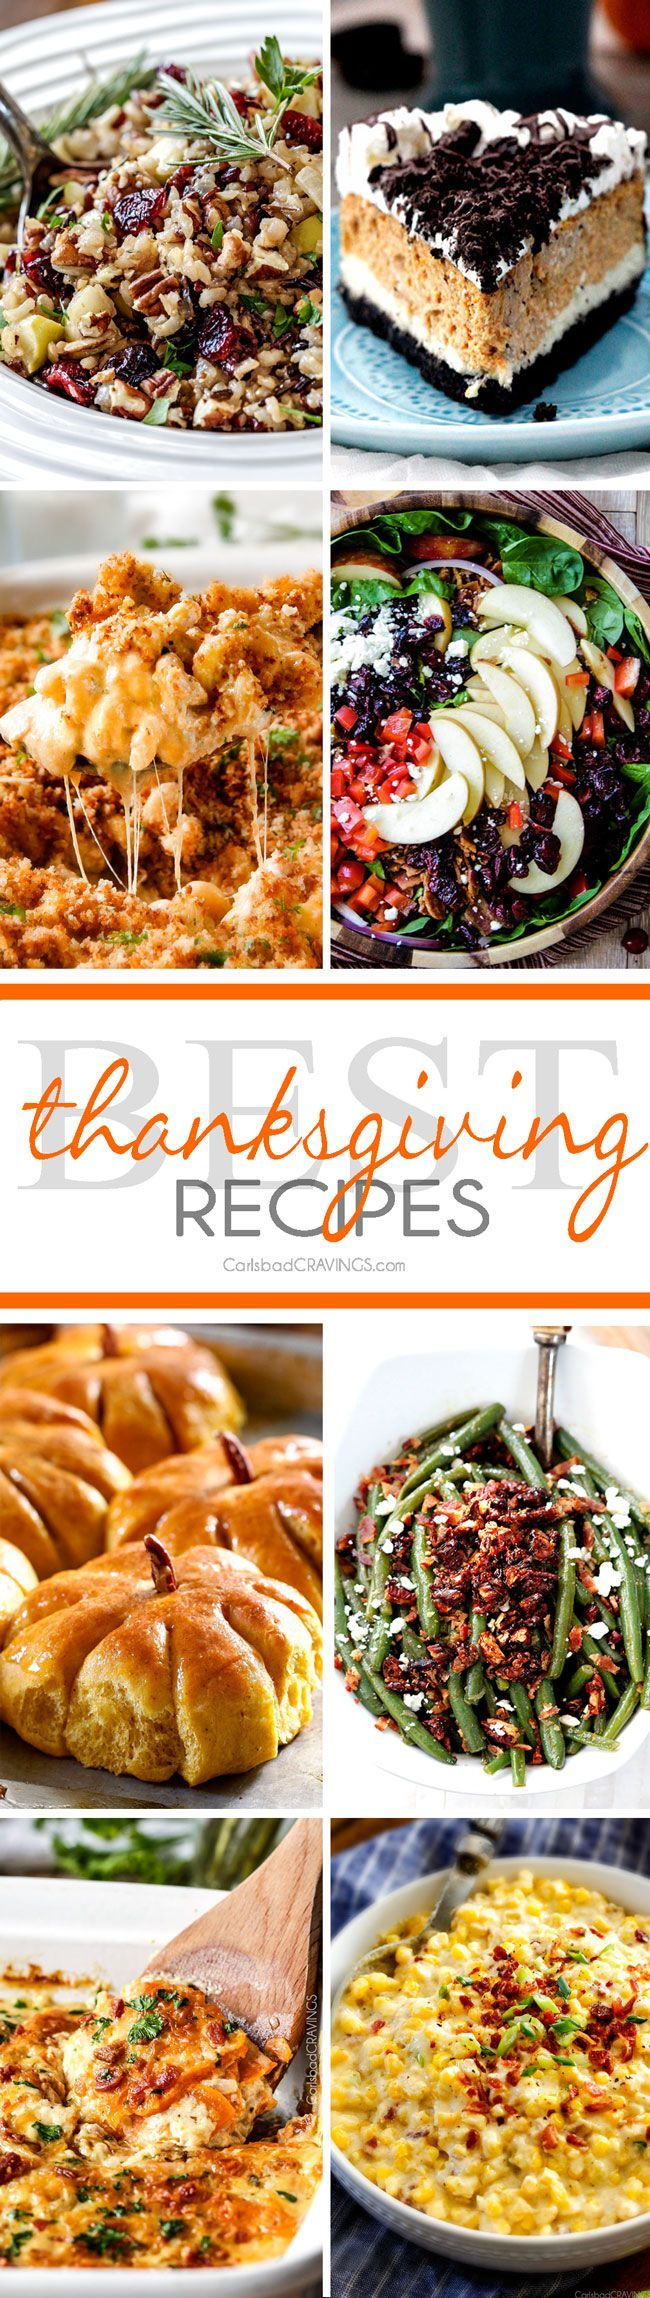 Over 25 of the BEST Thanksgiving Recipes from appetizers, sides and desserts all in ONE spot!  You are guaranteed to find a new family favorite everyone will go crazy over!